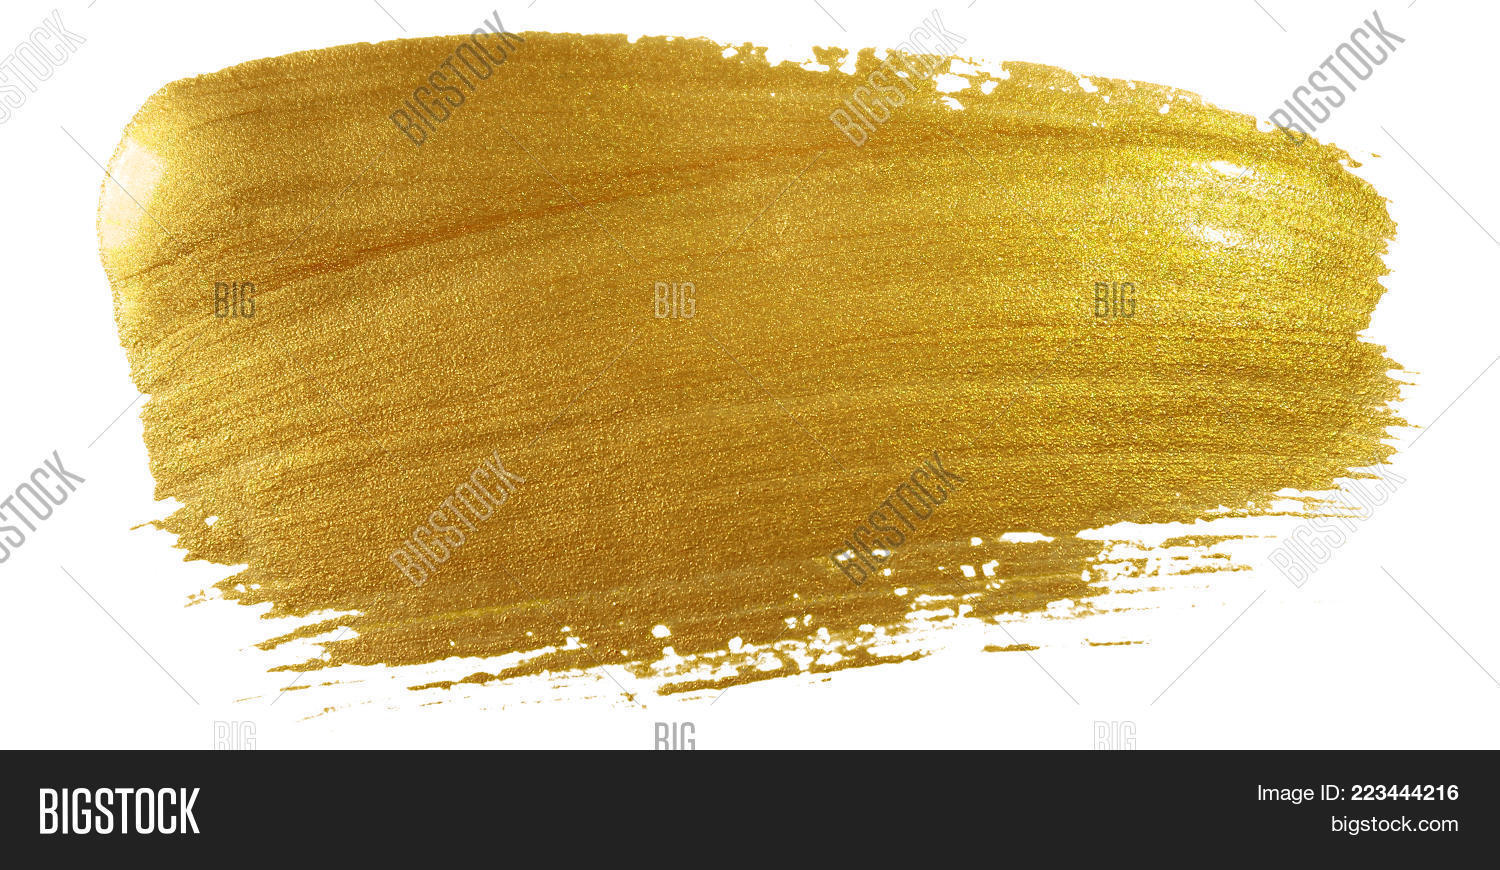 gold color paint brush image photo free trial bigstock